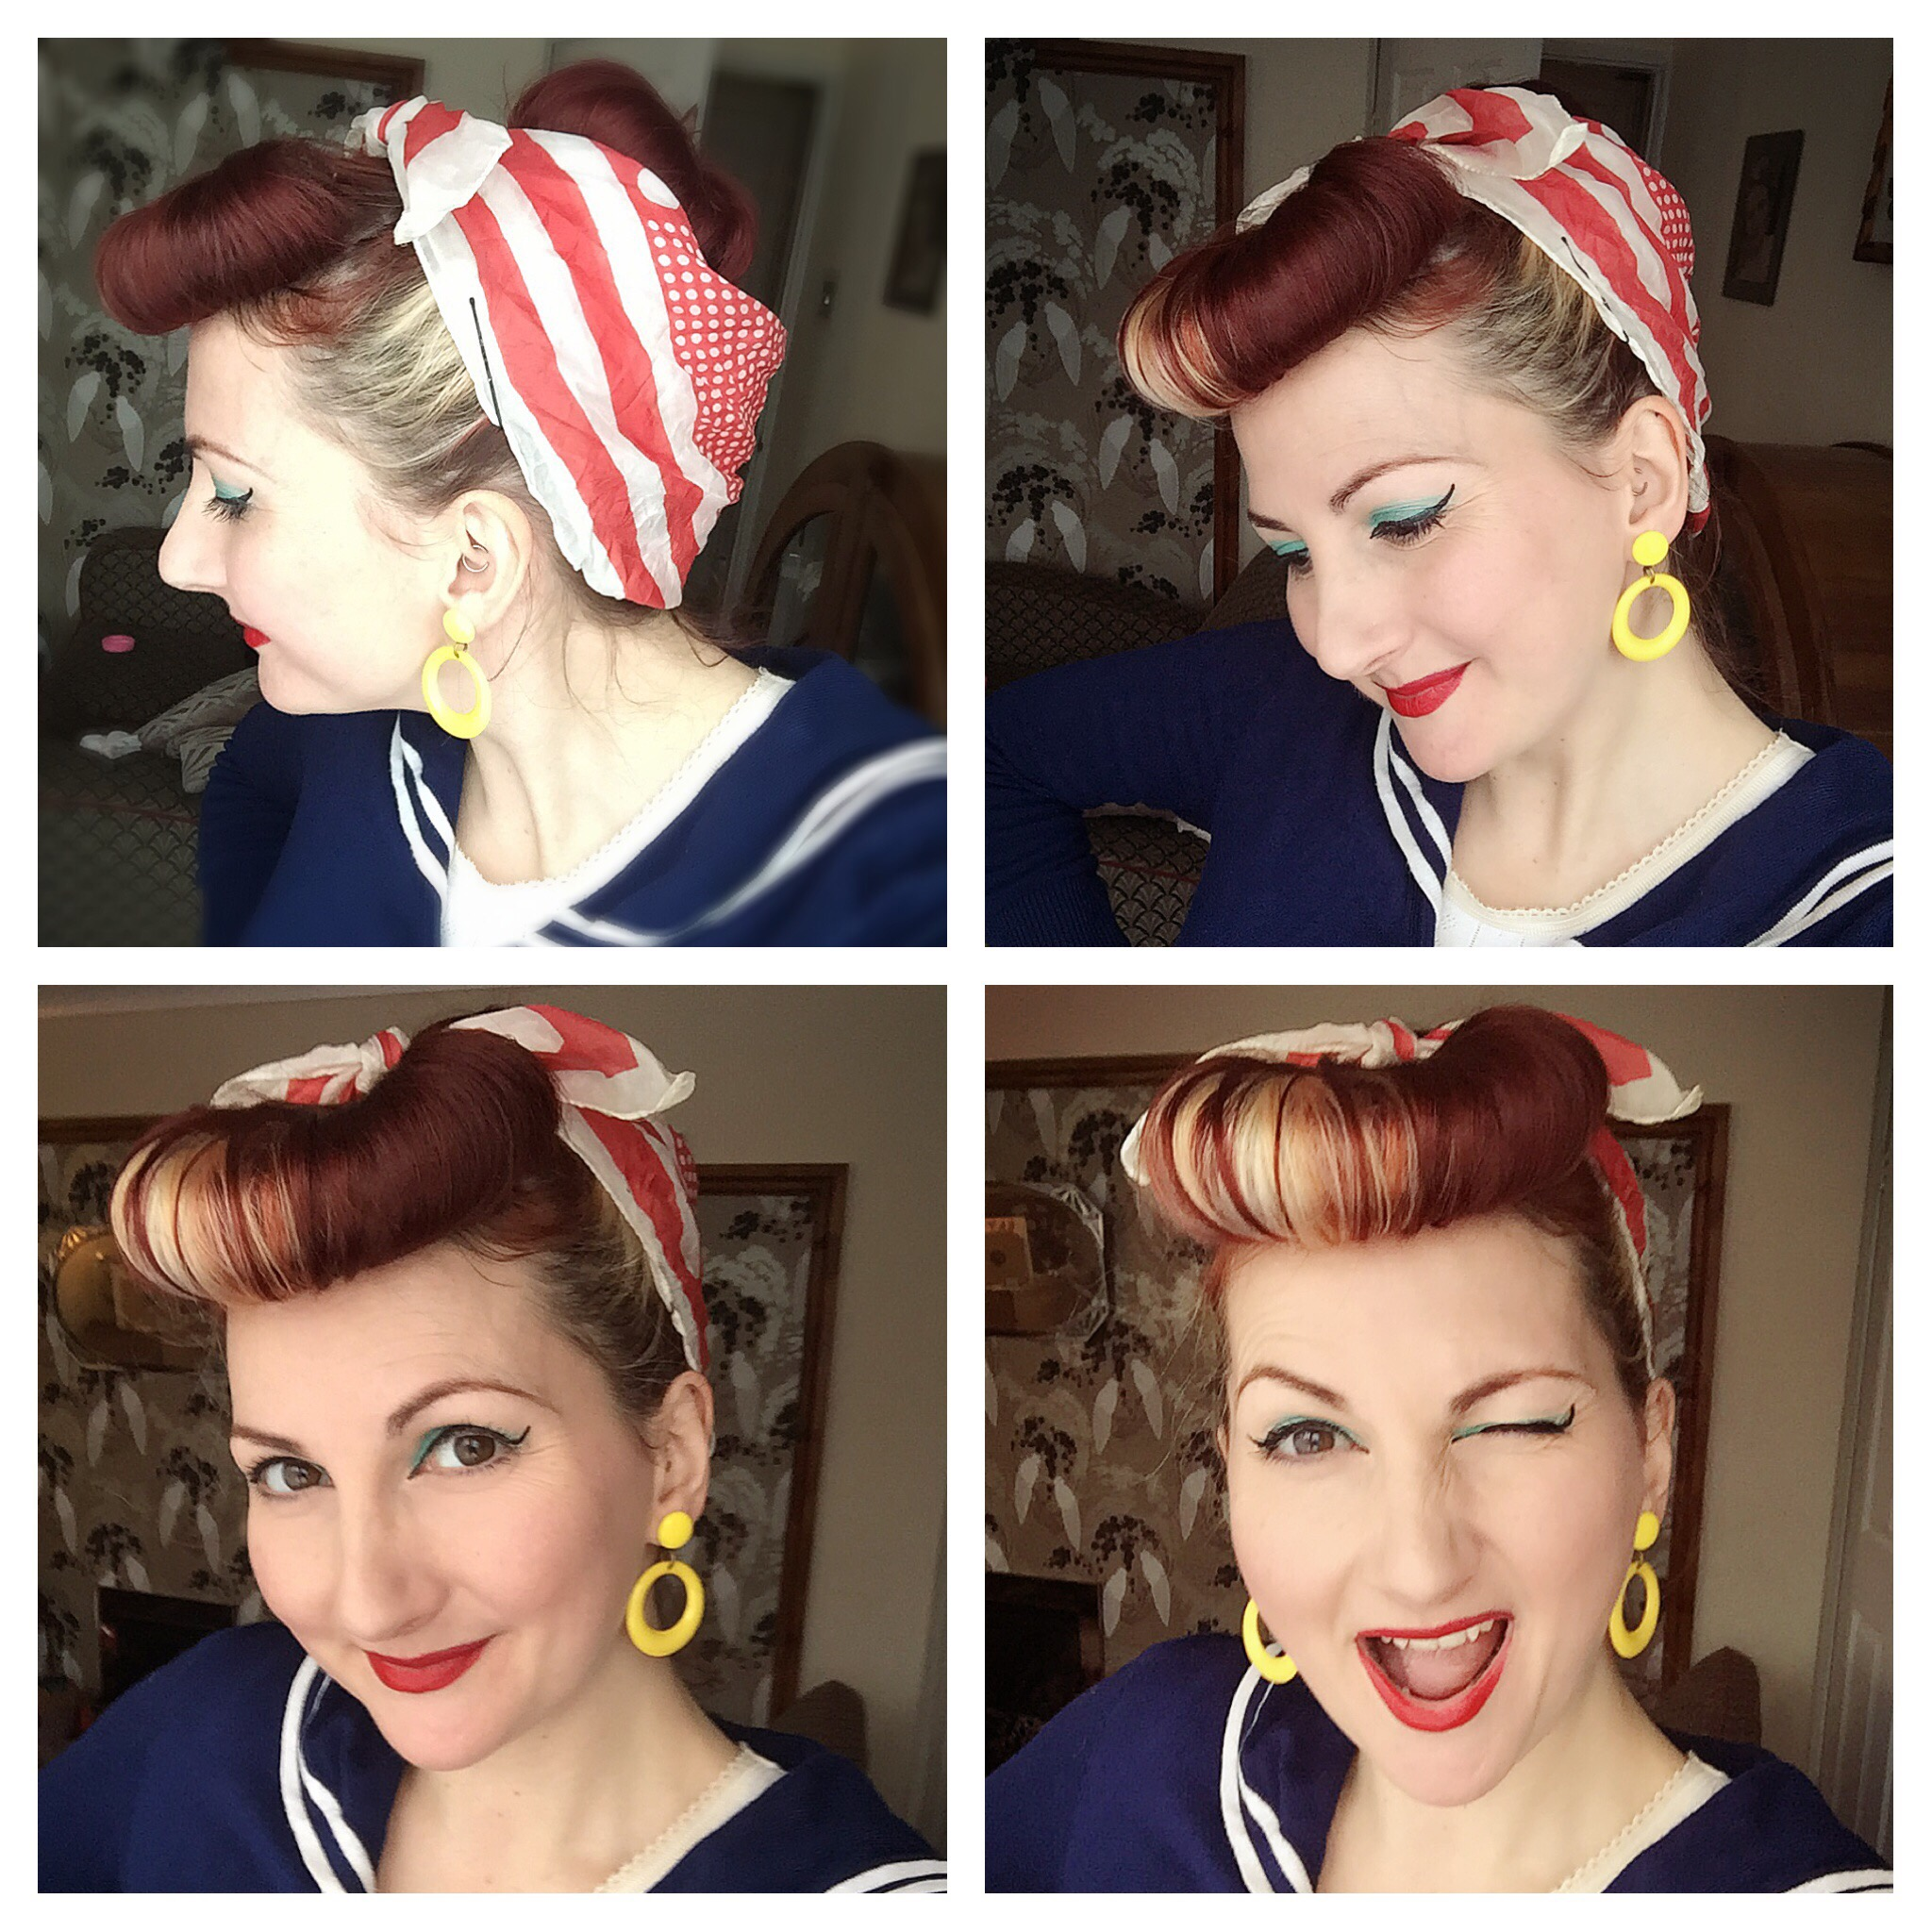 Retro Hairstyle Using Sponge Rings 1940s Pin Up Entertainer